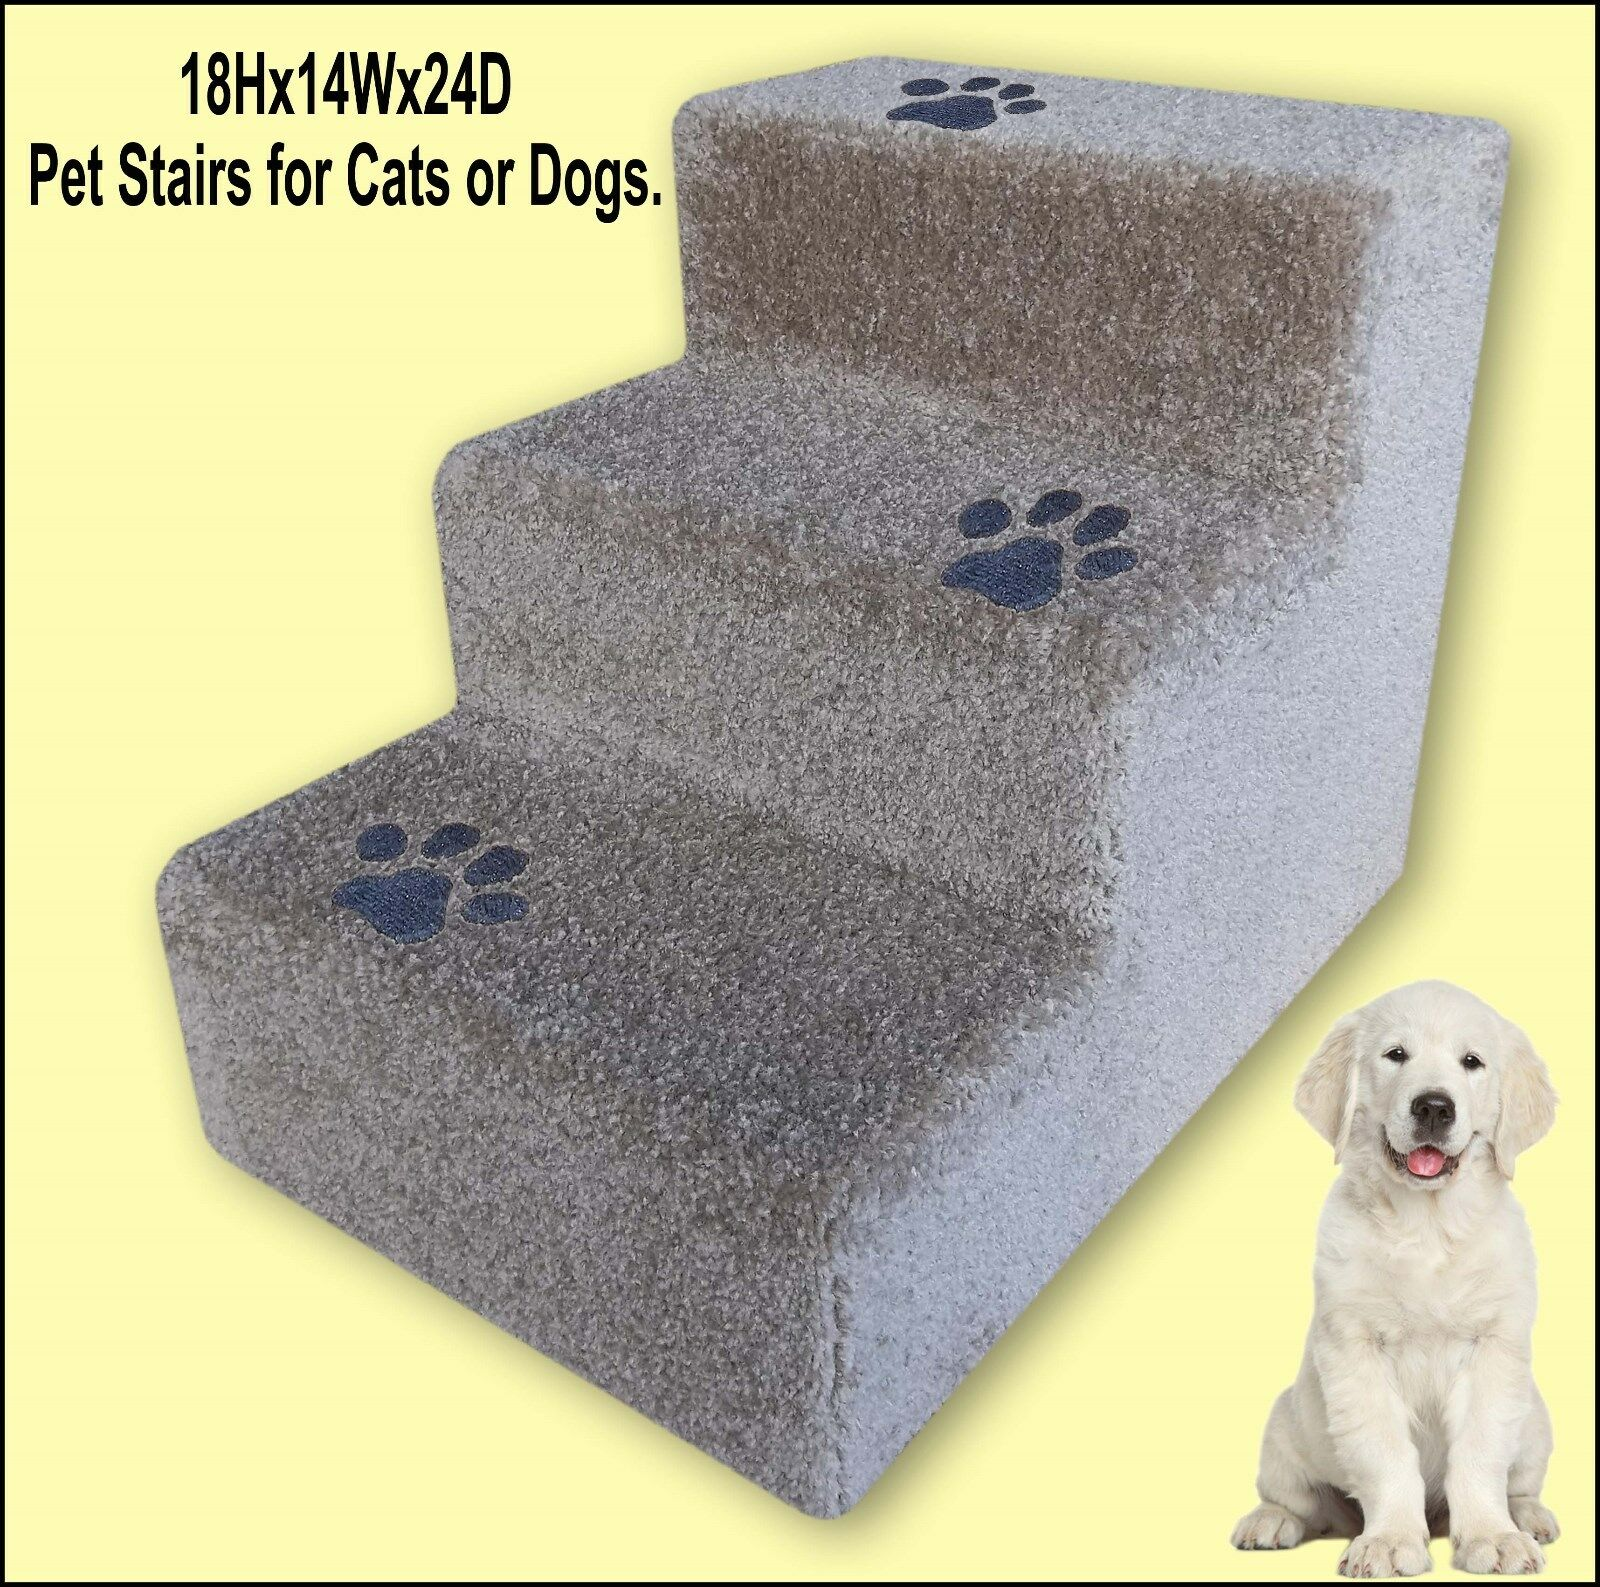 liquidazione fino al 70% Dog steps with inlaid paw prints. , Three steps steps steps for dogs or cats.  memorizzare